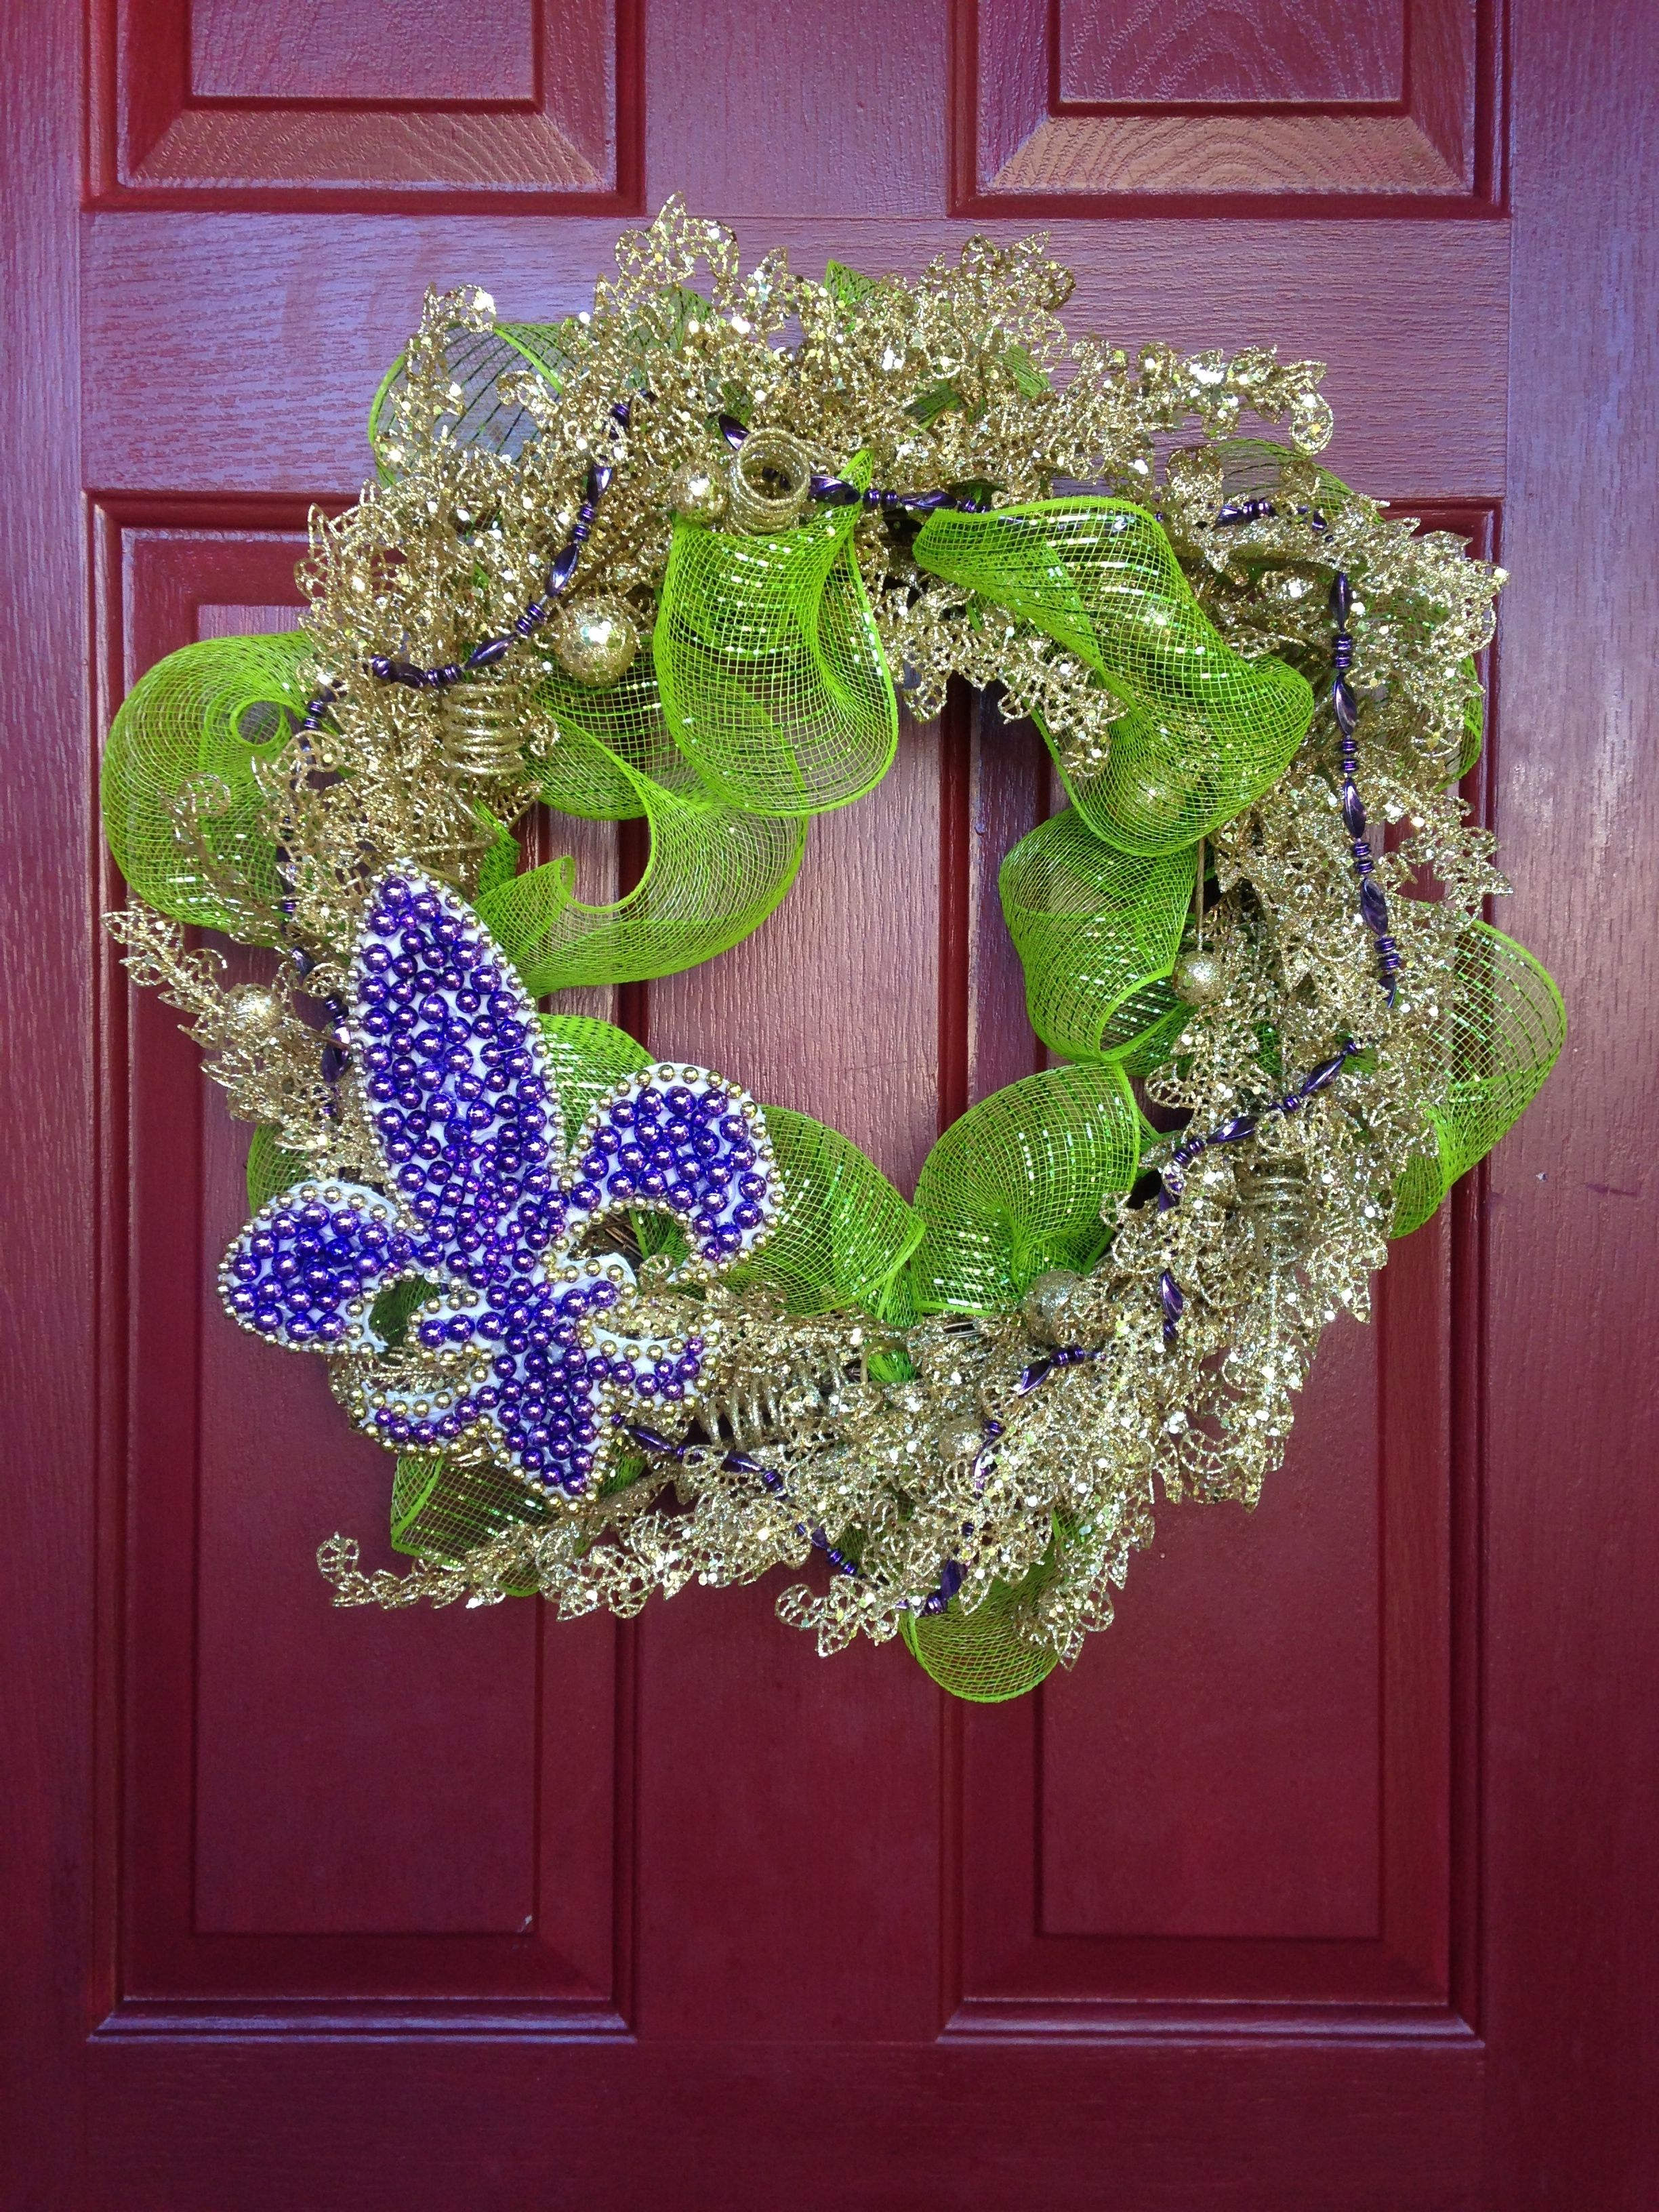 a gaudy gold wreath on christmas clearance at home depot paired with green mesh - Home Depot Christmas Clearance